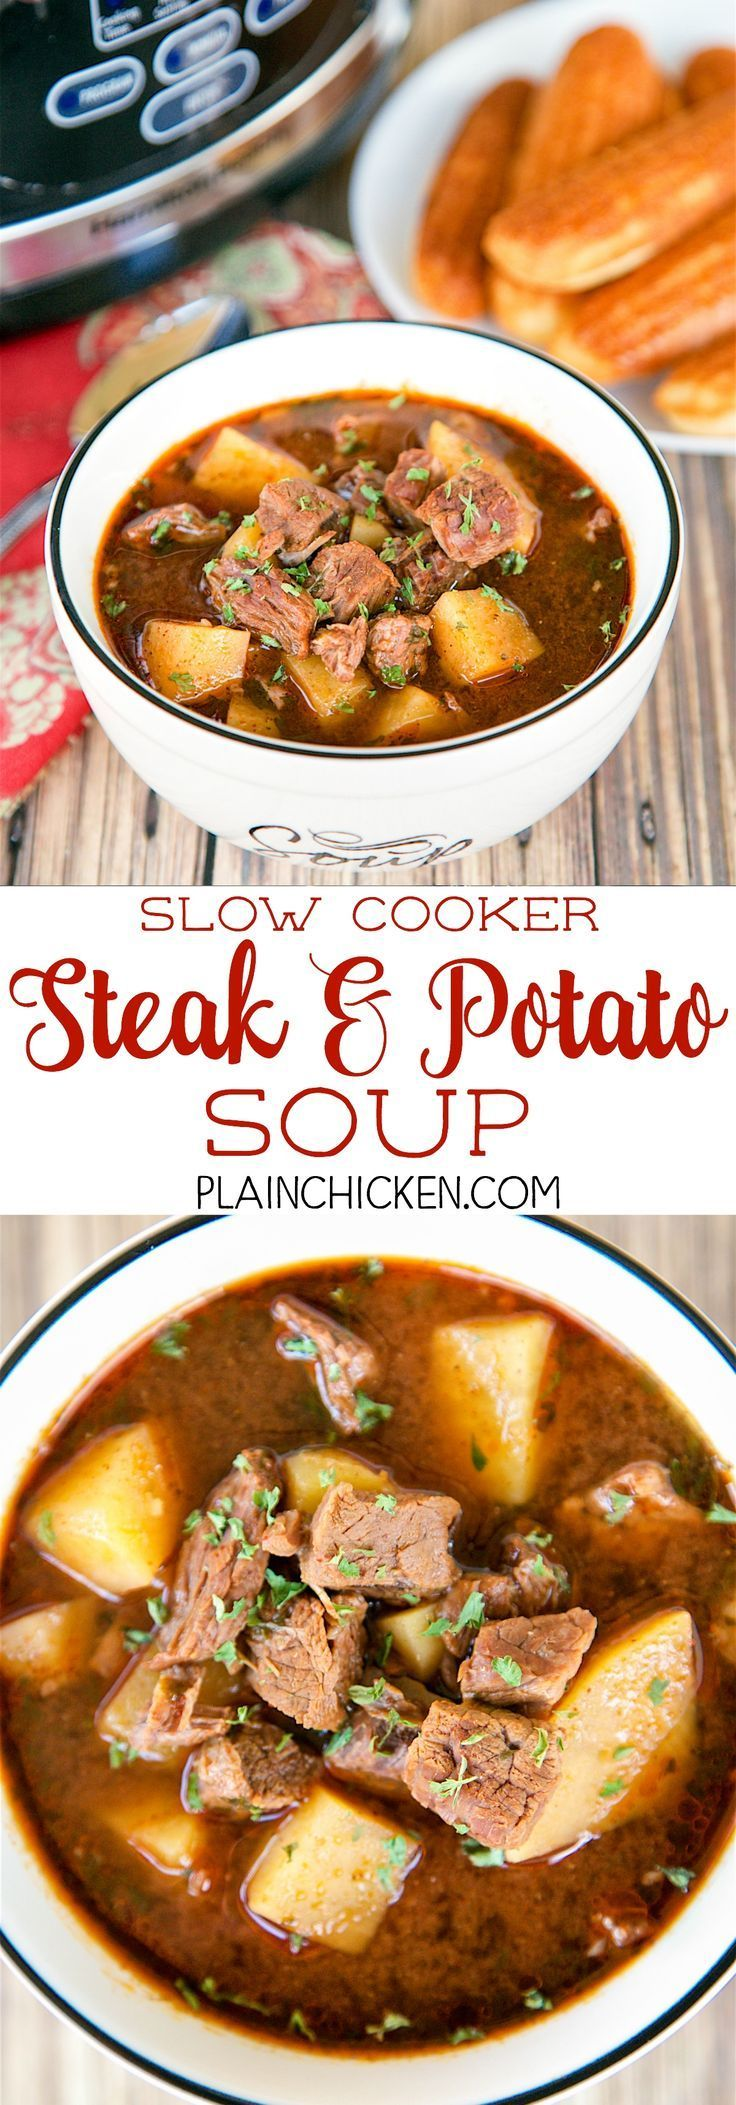 Slow Cooker Steak and Potato Soup - AMAZING! Everyone loved this easy soup!! Just dump everything in the slow cooker and let it do all the work. Stew meat, onion, yukon gold potatoes, beef broth, stea (Food Recipes Potatoes)